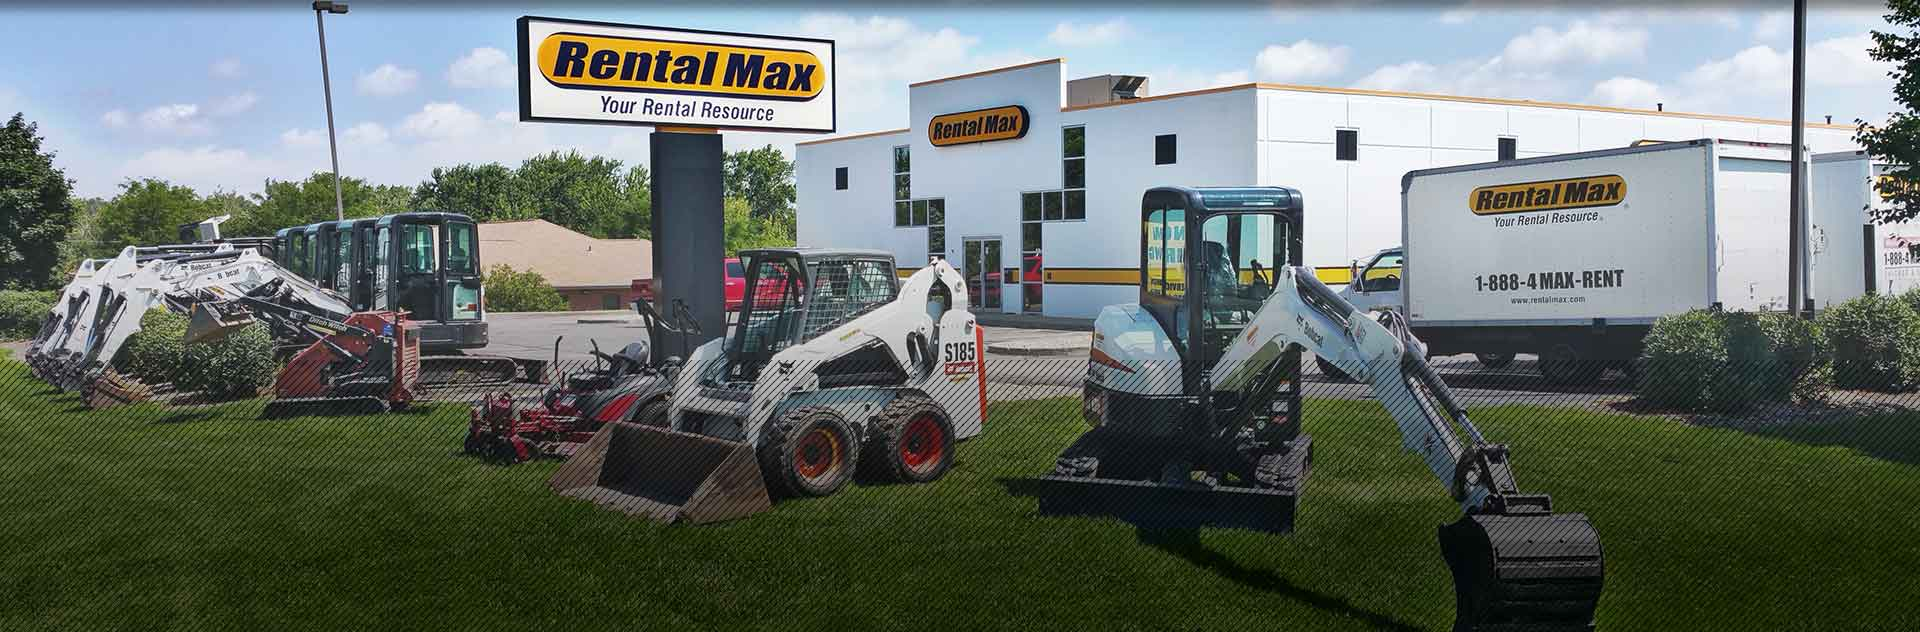 Equipment rentals from RentalMax in Chicagoland